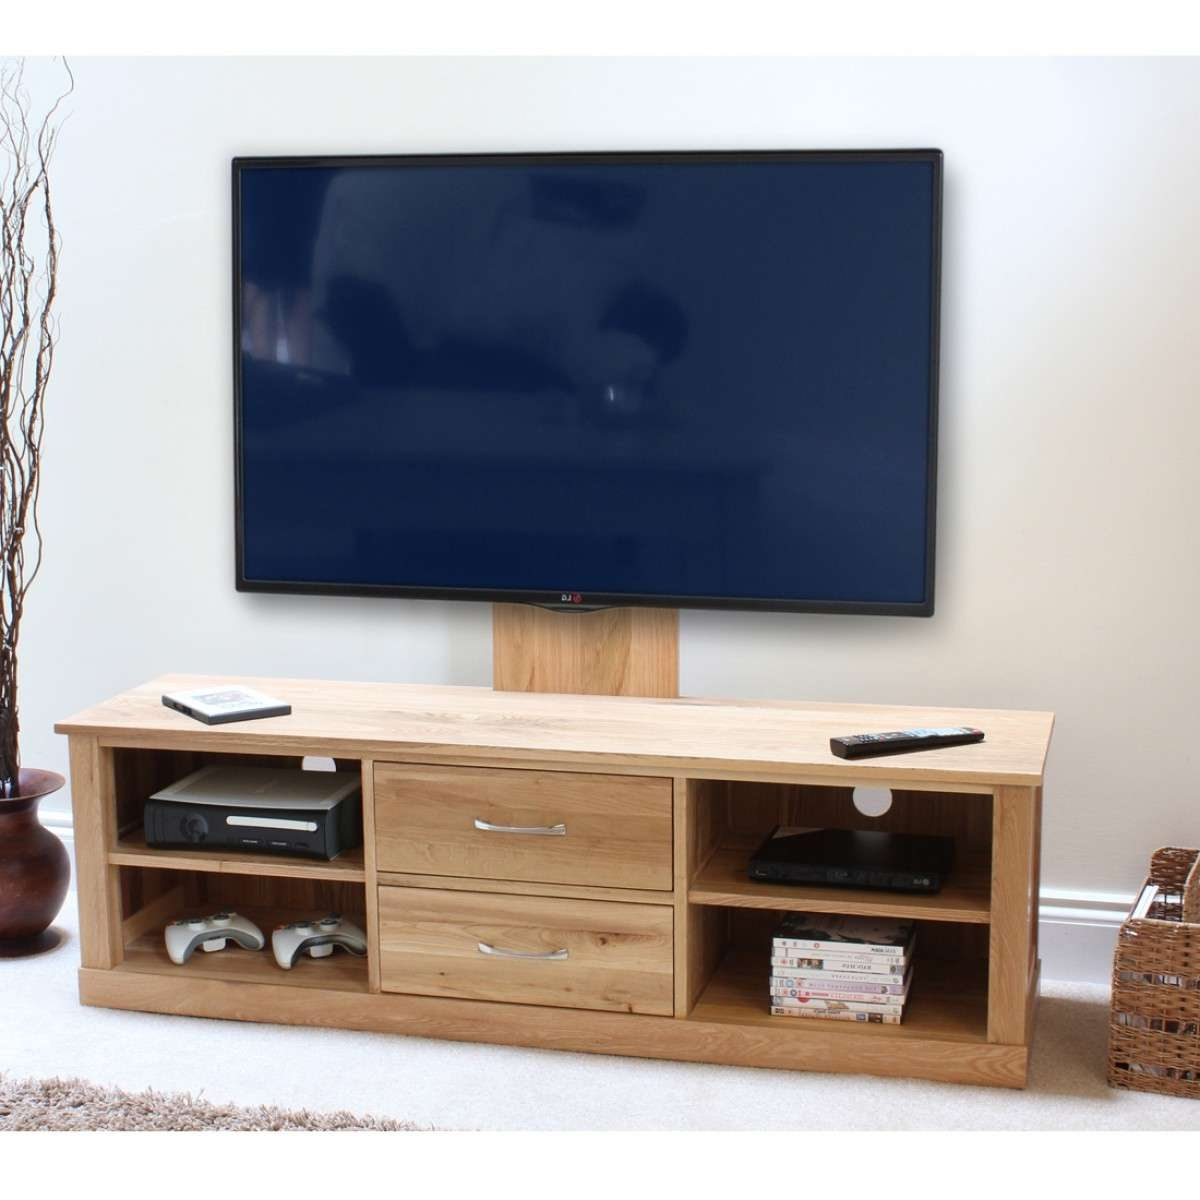 Baumhaus Mobel Oak Mounted Widescreen Tv Cabinet Cor09E For Widescreen Tv Cabinets (View 2 of 20)